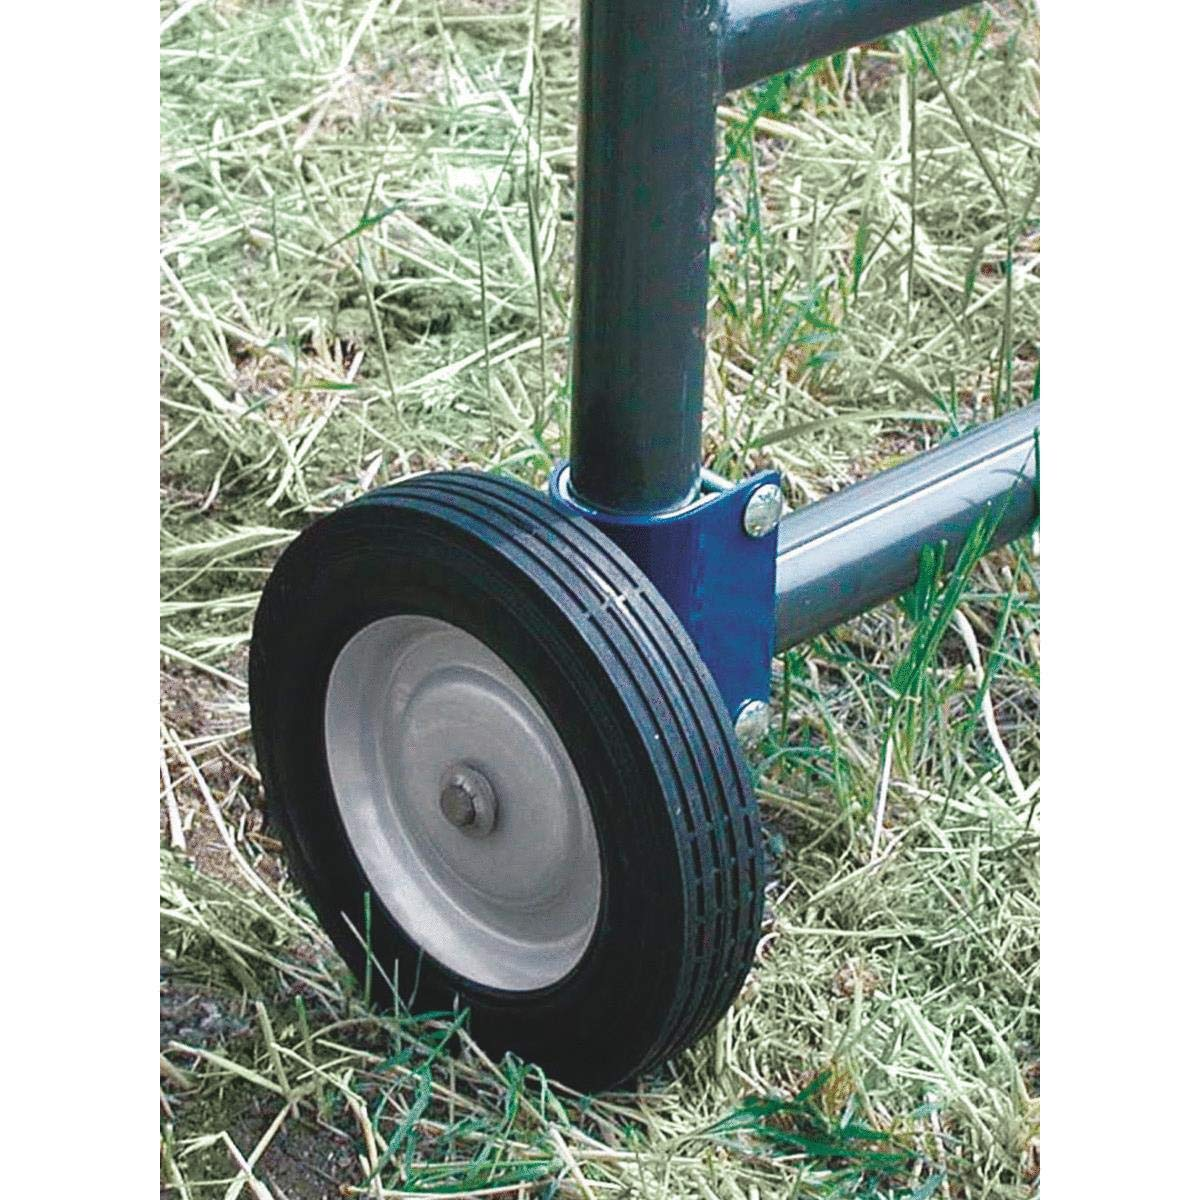 SpeeCo Farmex S16100600-GL161006 Gate Wheel Helps to prevents gate sagging Allows gate to open and close with ease Fits round tube gate 1-5 8 to 2 O.D. Easy installation